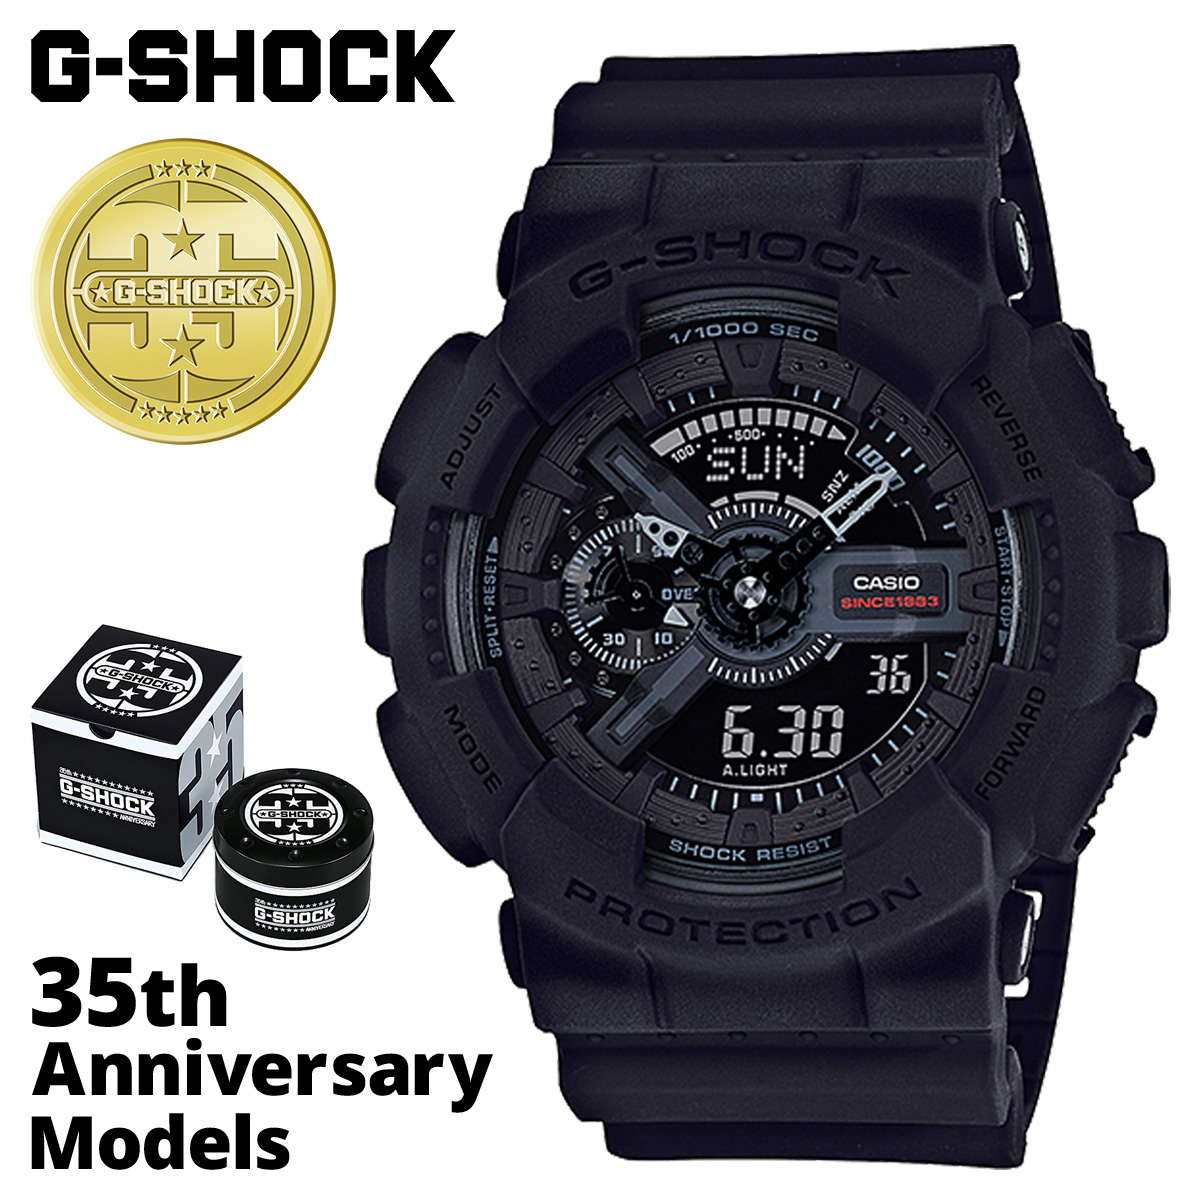 G Shock G Shock G Shock Black Black Men Gap Dis Of The 35th Anniversary Of Casio Casio G Shock Watch Ga 135a 1ajr Big Bang Black